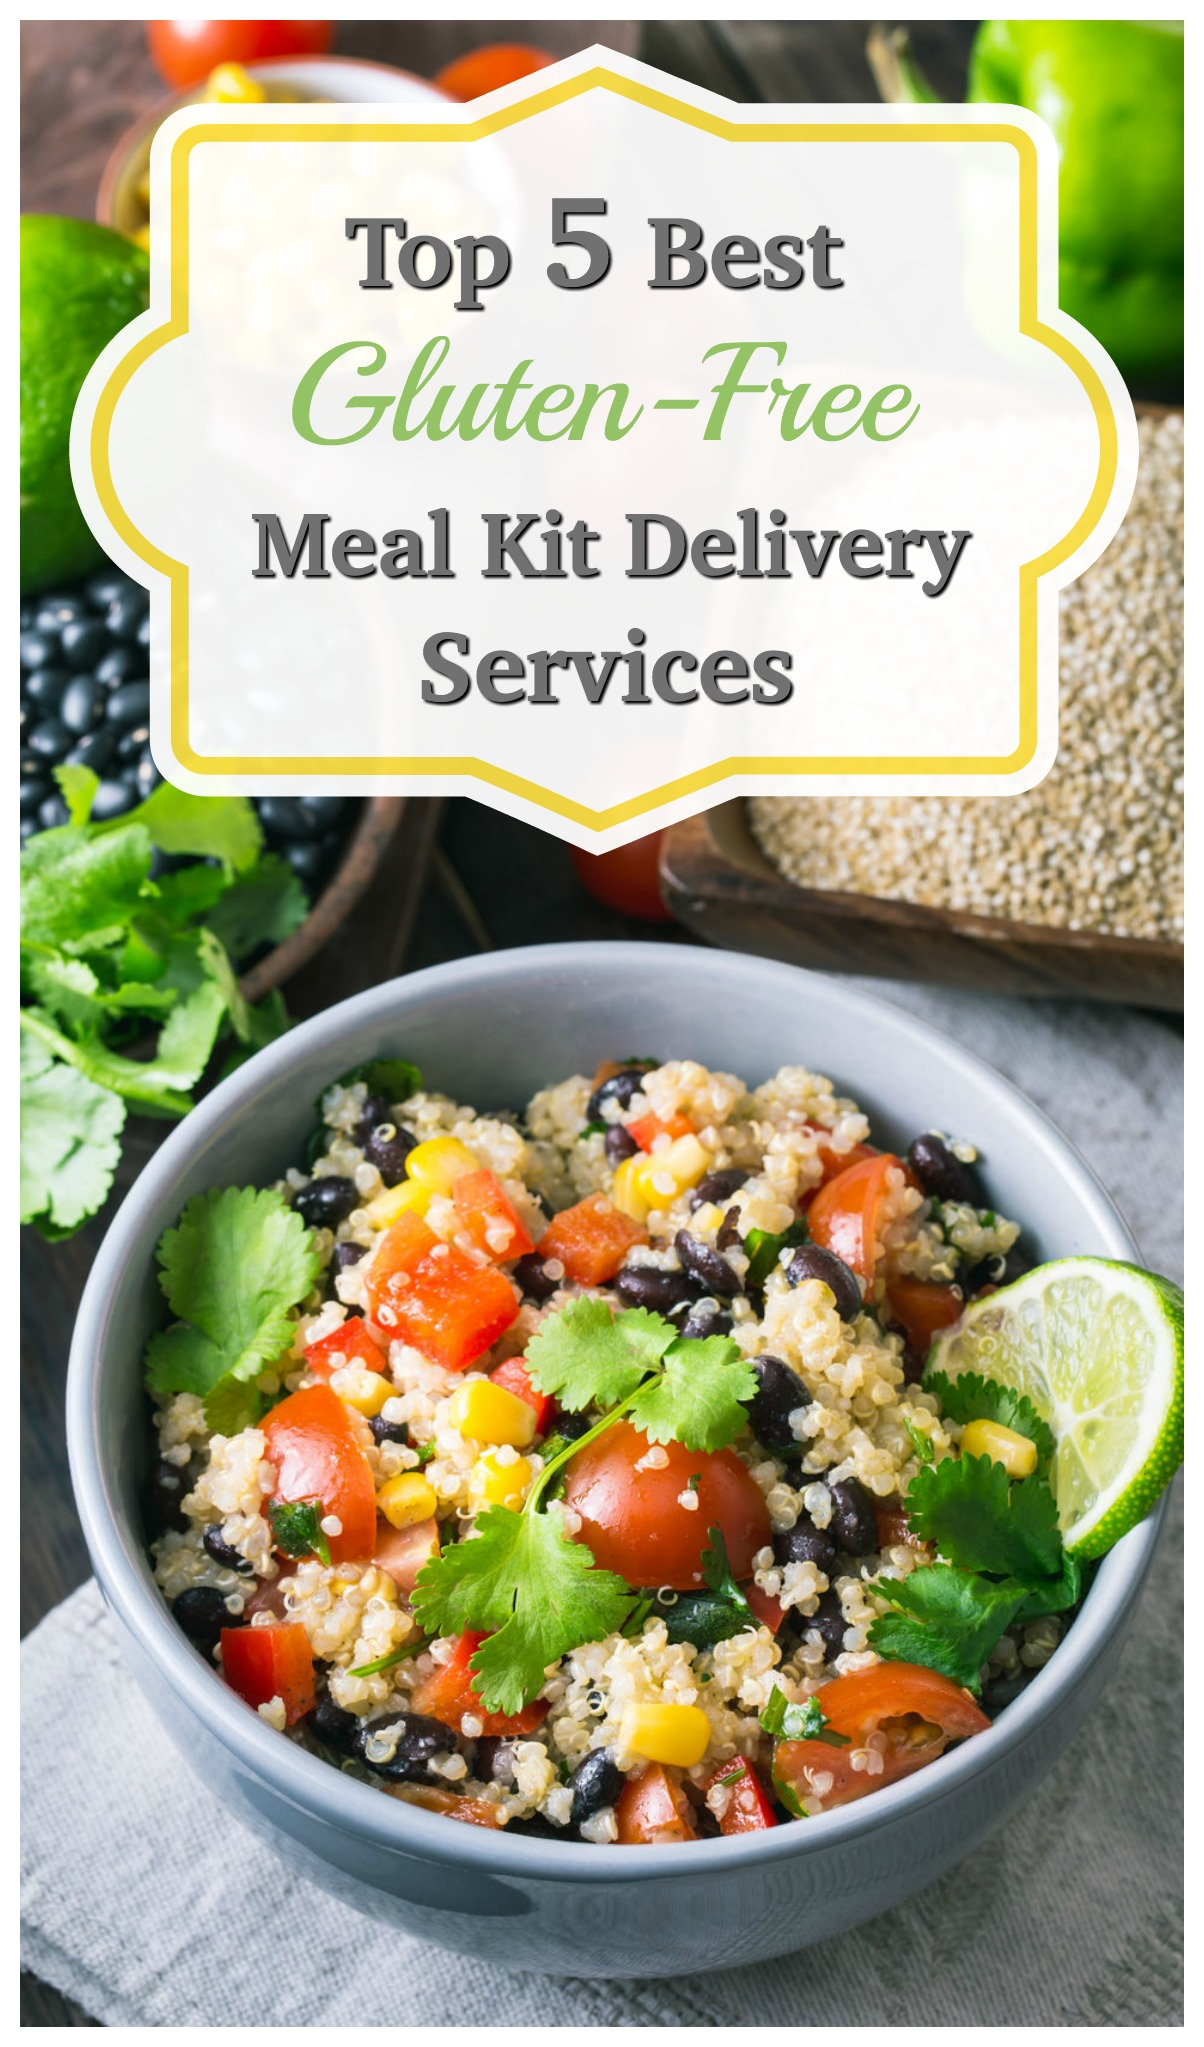 Need Gluten-Free Meals? We LOVE these 5 Meal Kit Delivery Services that provide Gluten-Free Meals! We tested them!